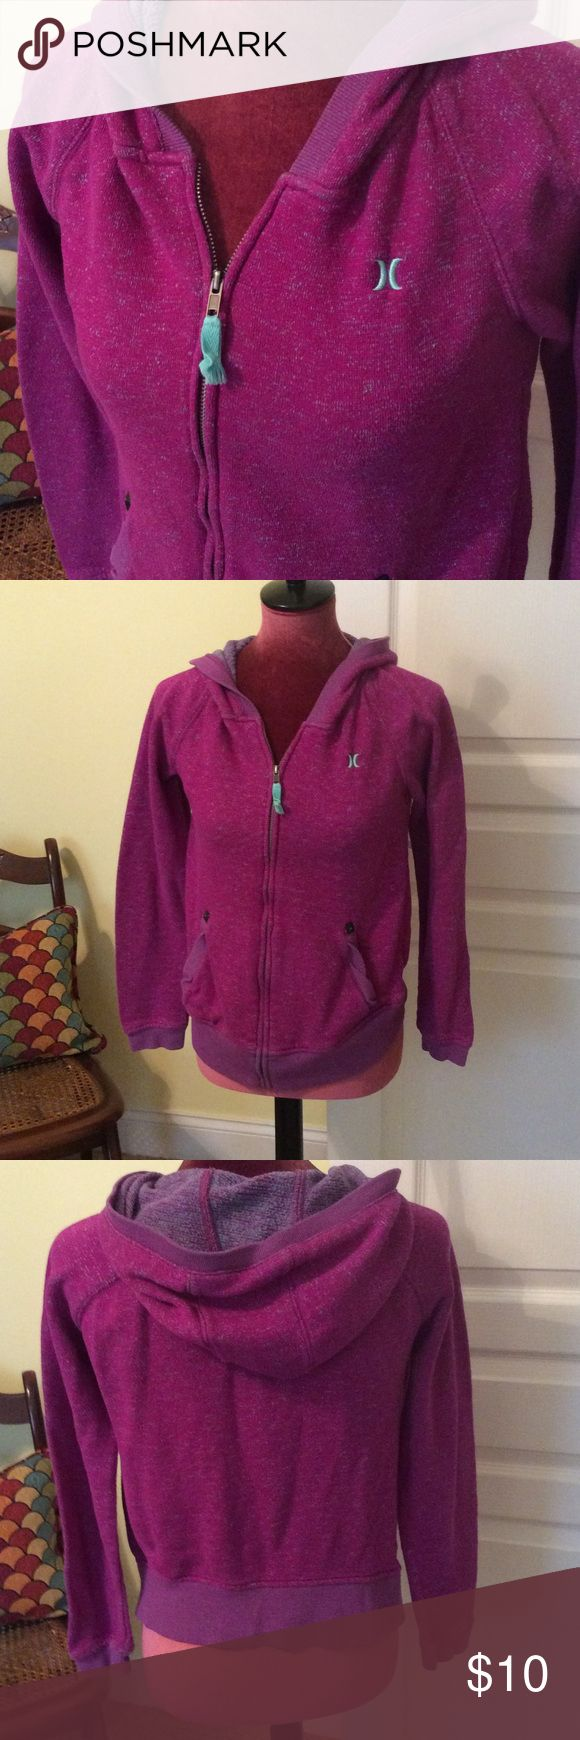 Hoodie Sweater 💕 Soft knit magenta and turquoise zip up hoodie by Hurley.  Front pockets and metal zipper. Runs small, cut for woman's body. Hurley Tops Sweatshirts & Hoodies